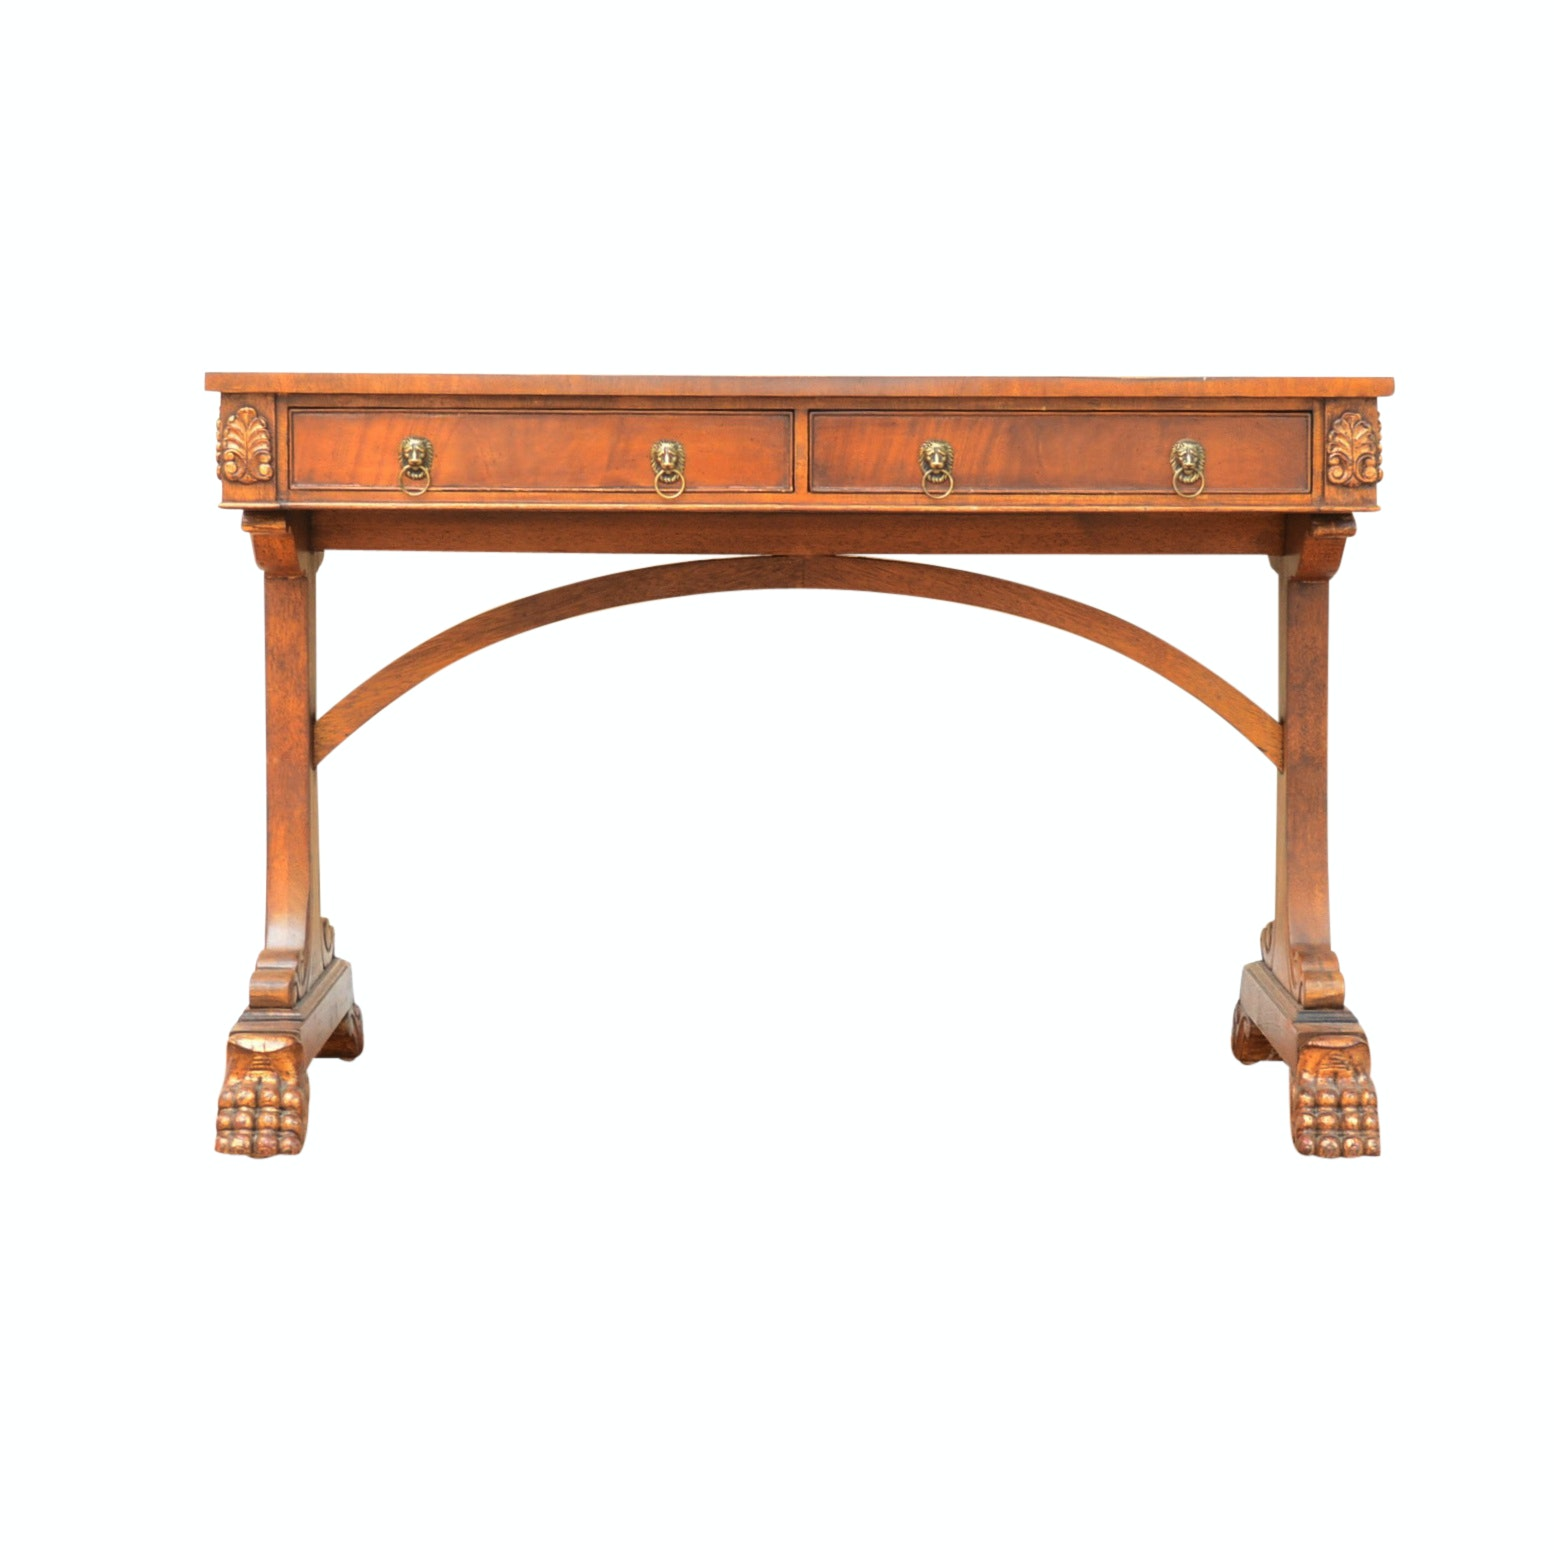 Contemporary Burl Wood Leather Top Student's Desk